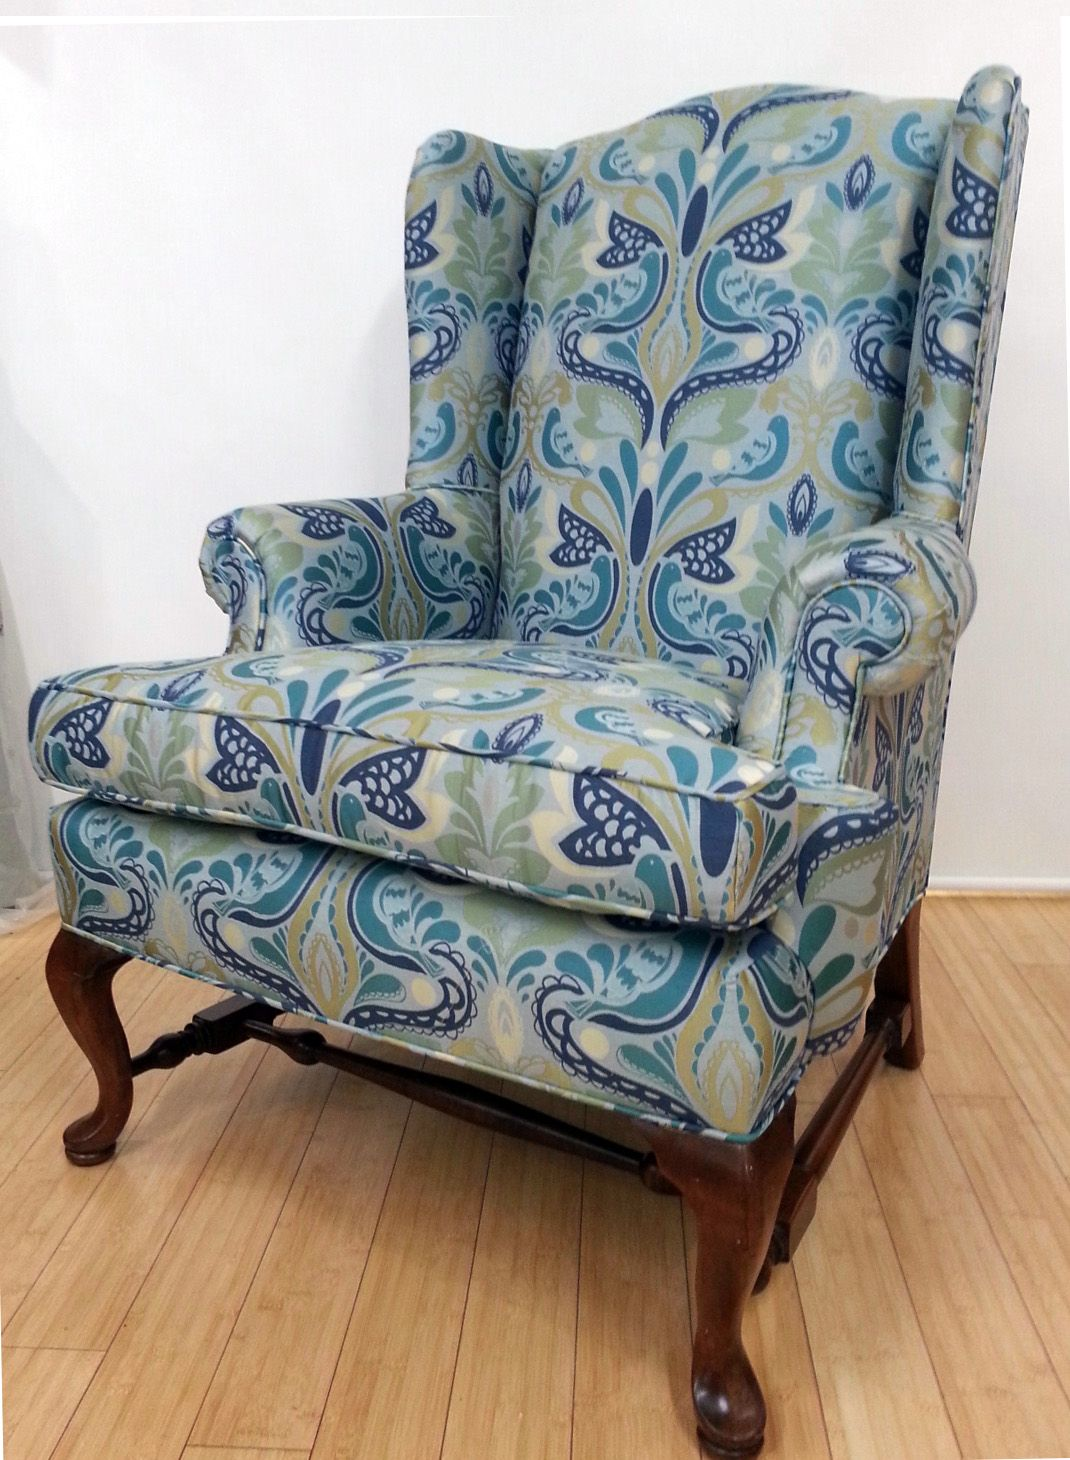 Reupholstered wing chair in floral bird print fabric from duralee fabrics upholster by blawnox upholstery